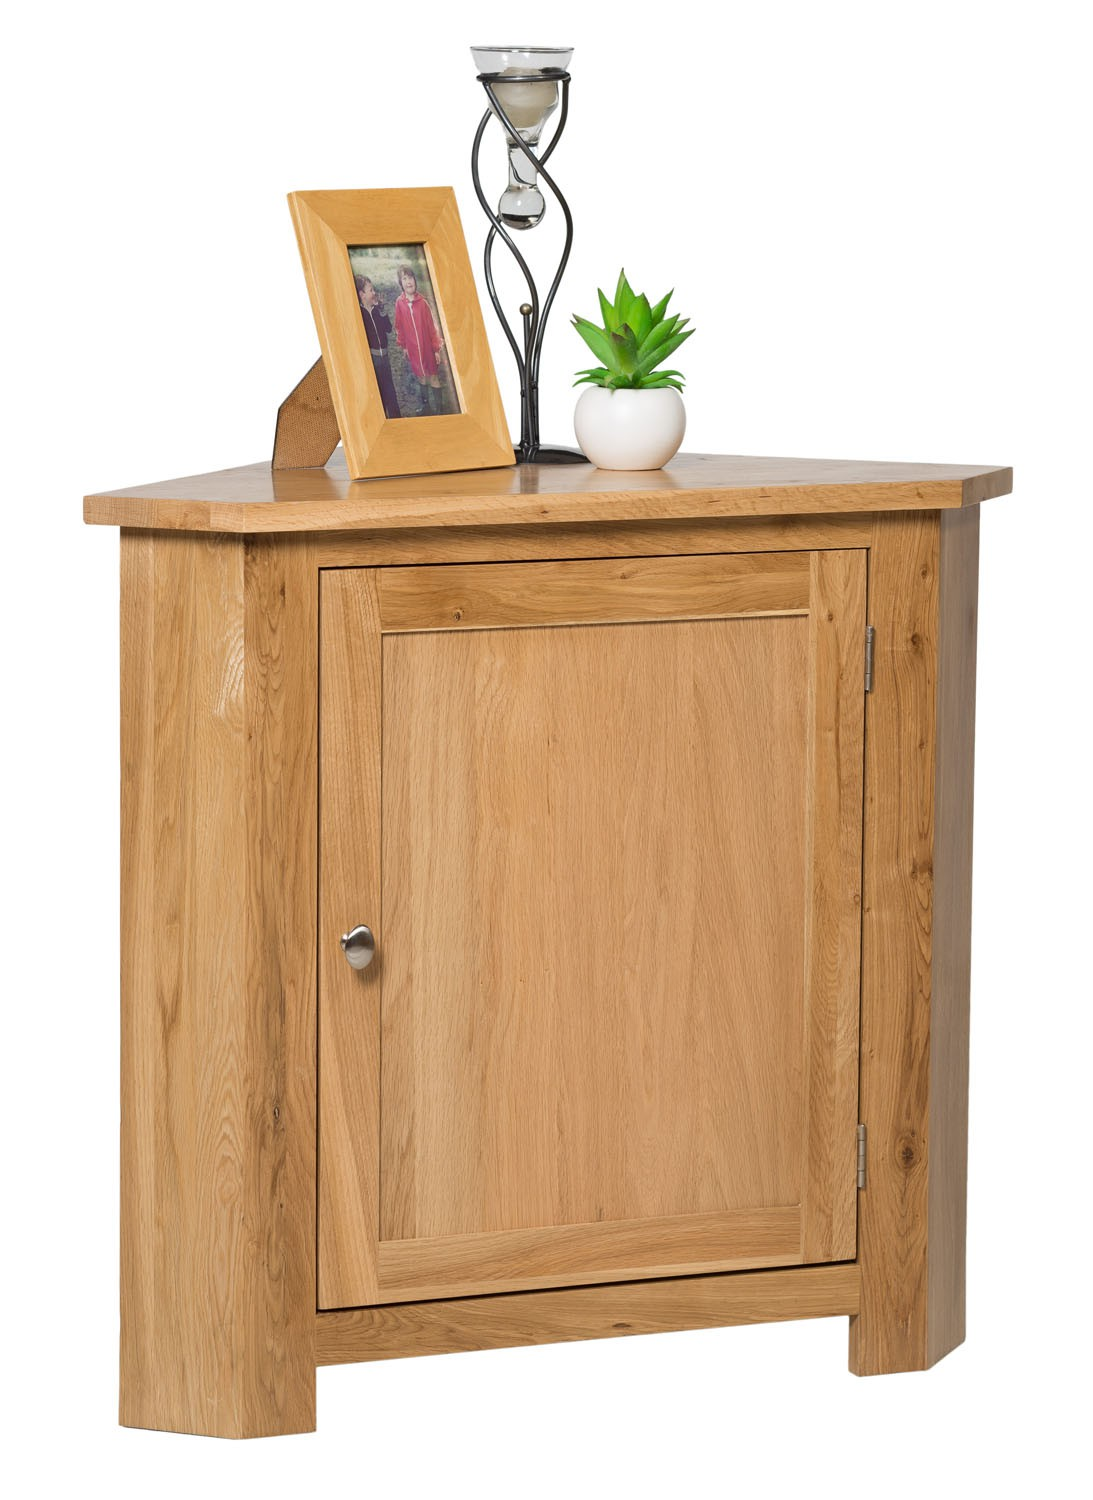 Waverly Oak Low Corner Cupboard with Shelf | Hallowood